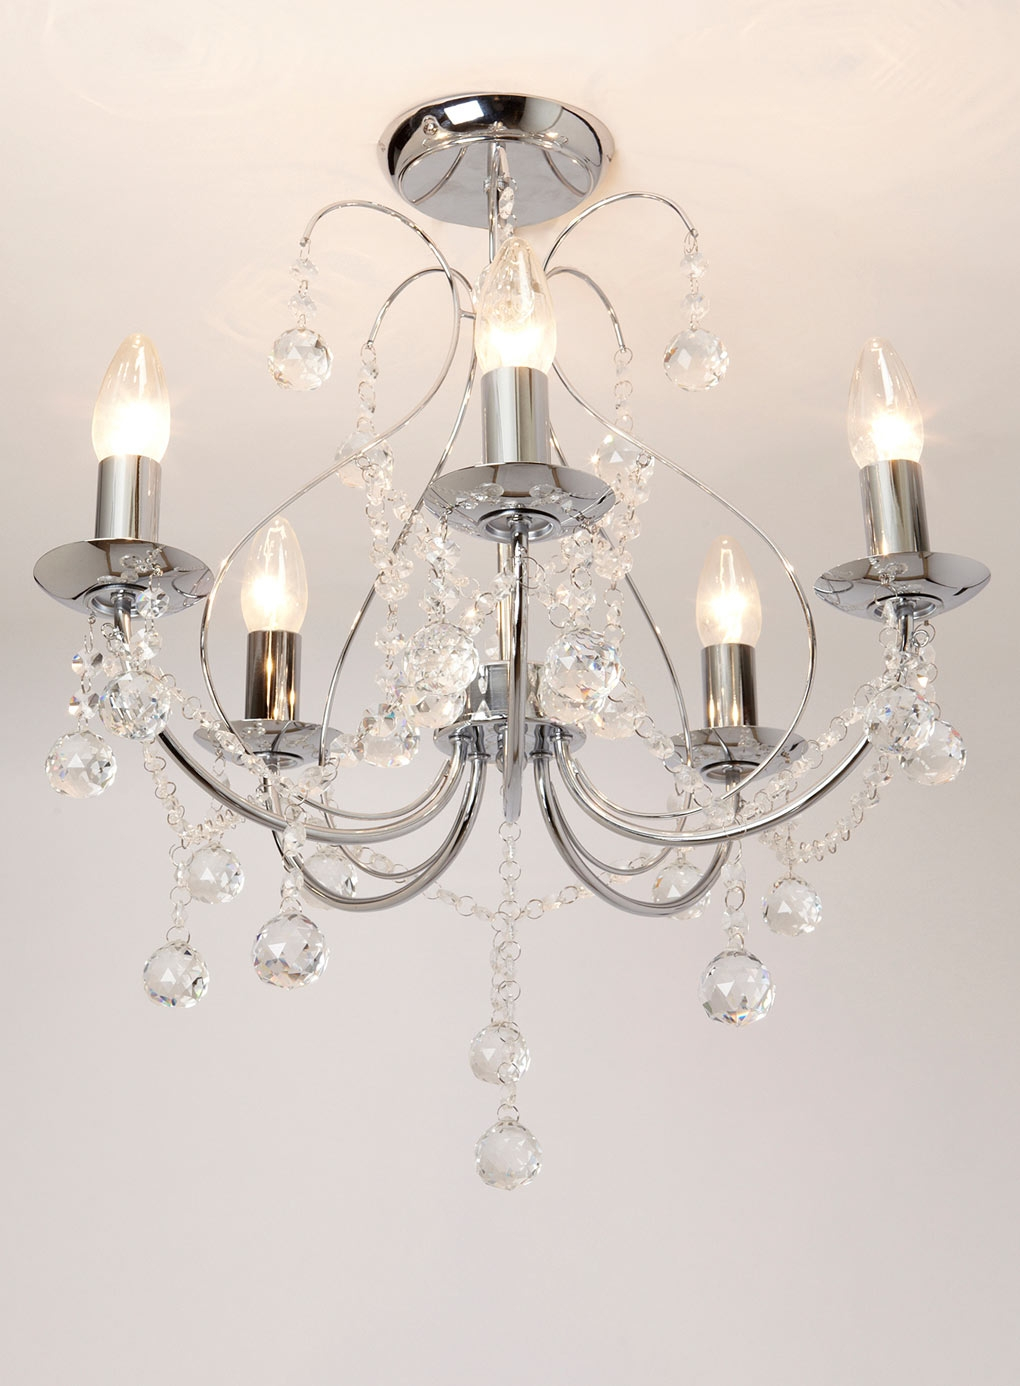 Living Room Light For The Home Pinterest Vintage Style Inside Flush Fitting Chandeliers (Image 13 of 15)